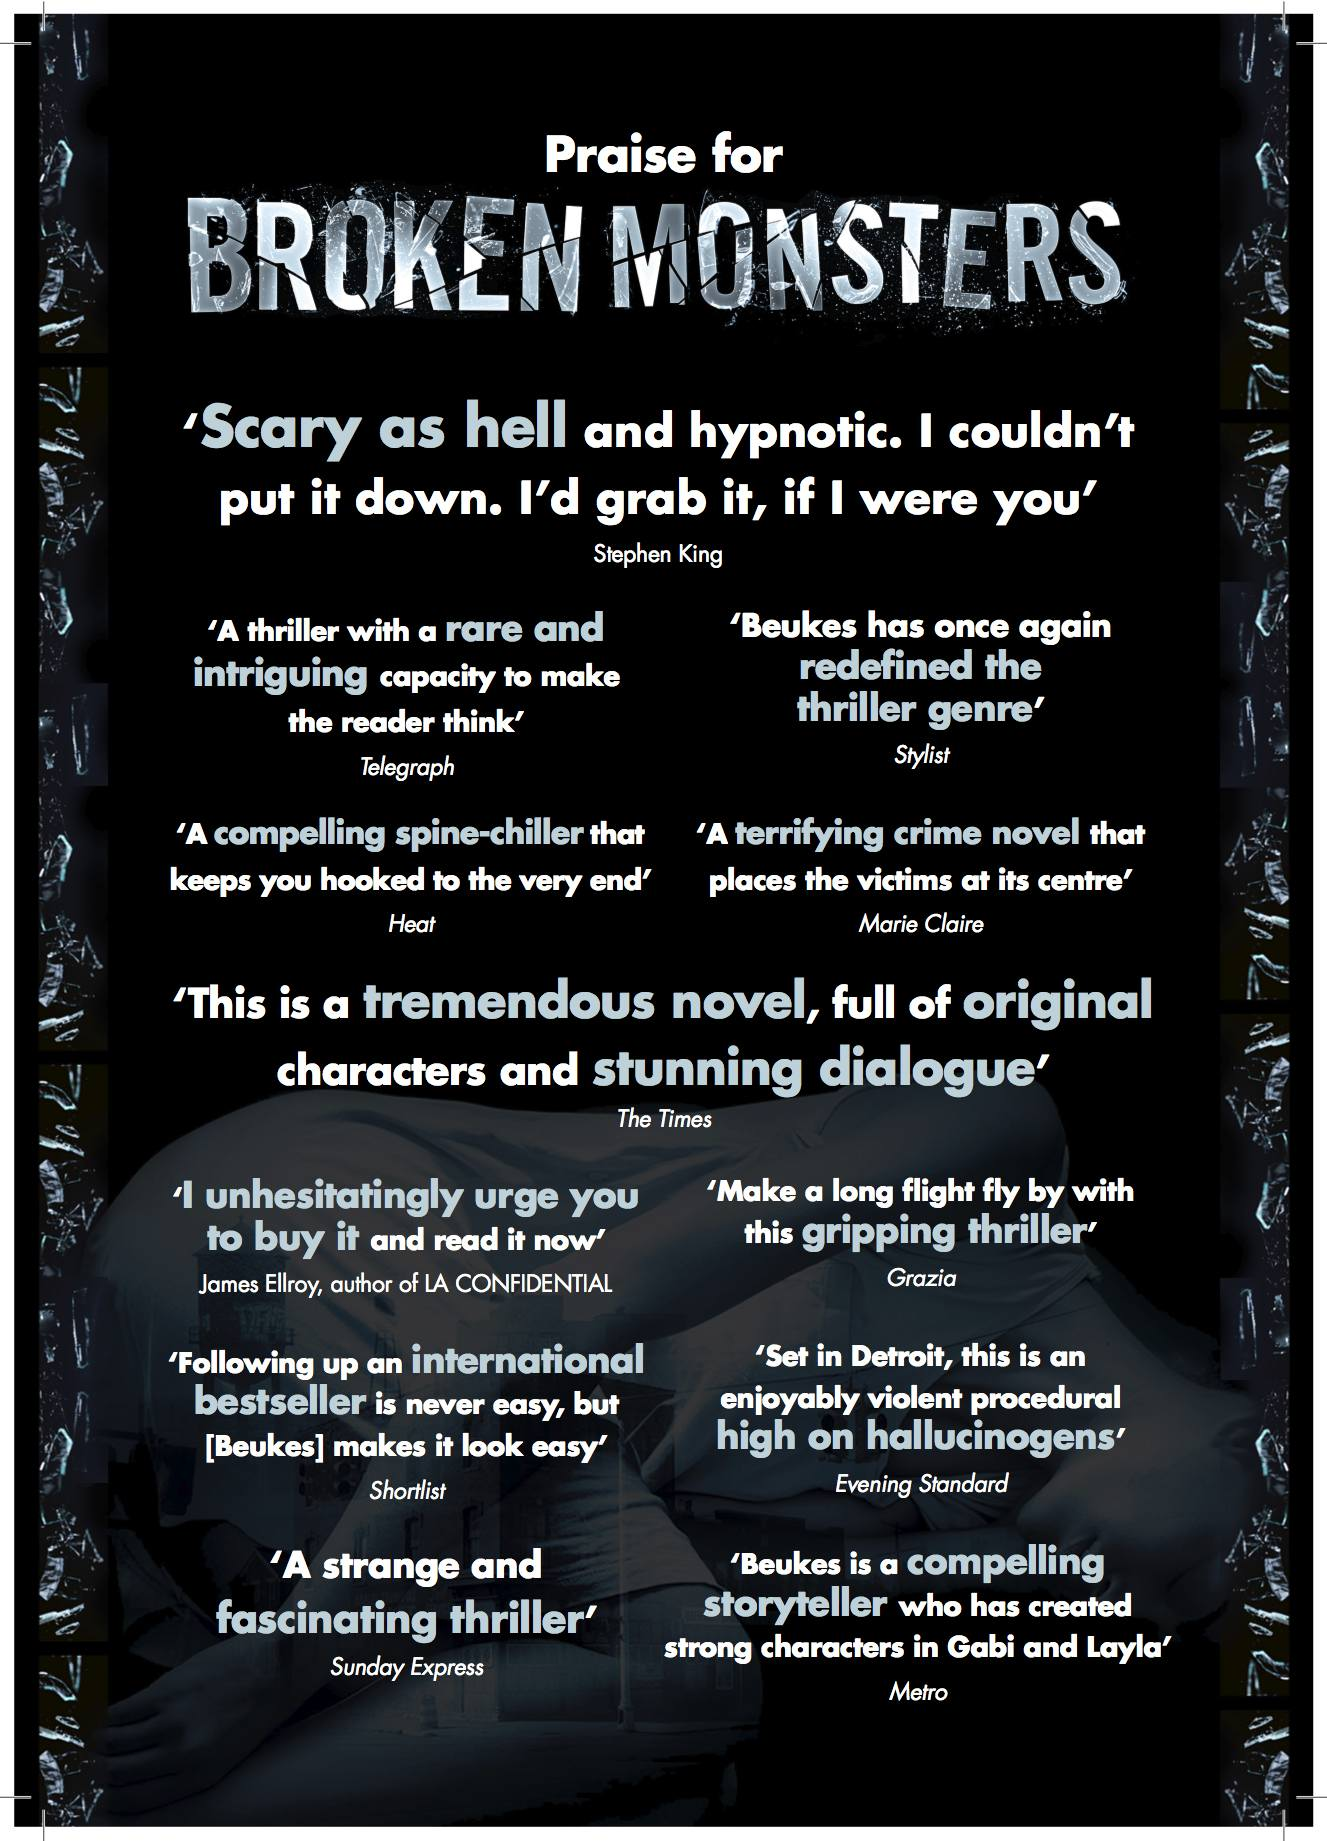 Broken Monsters A4 Quote Sheet copy